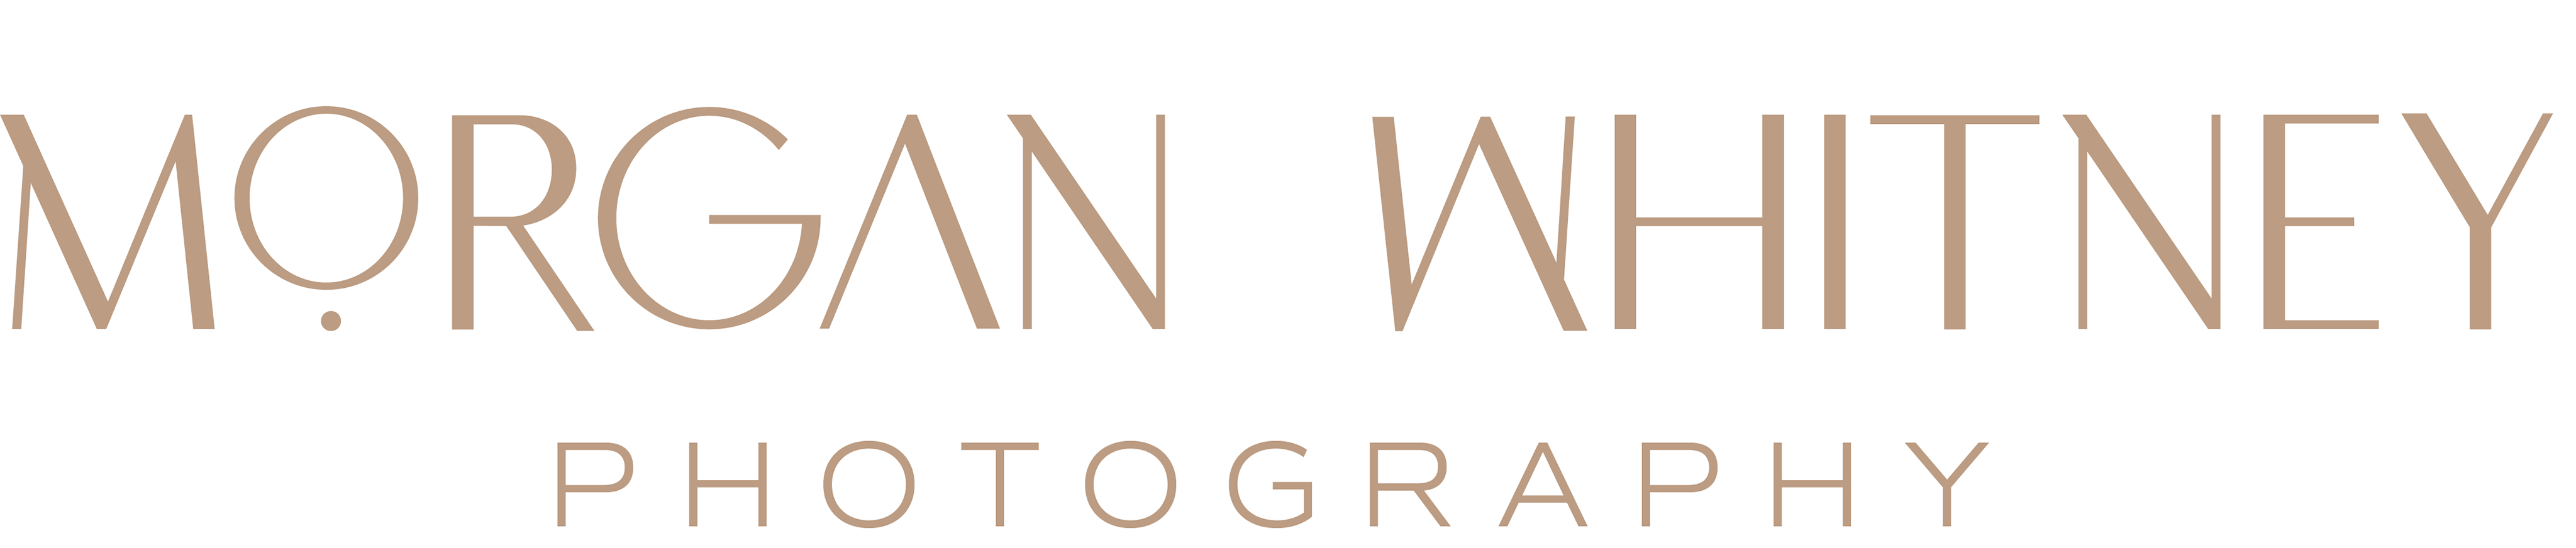 Morgan Whitney Photography